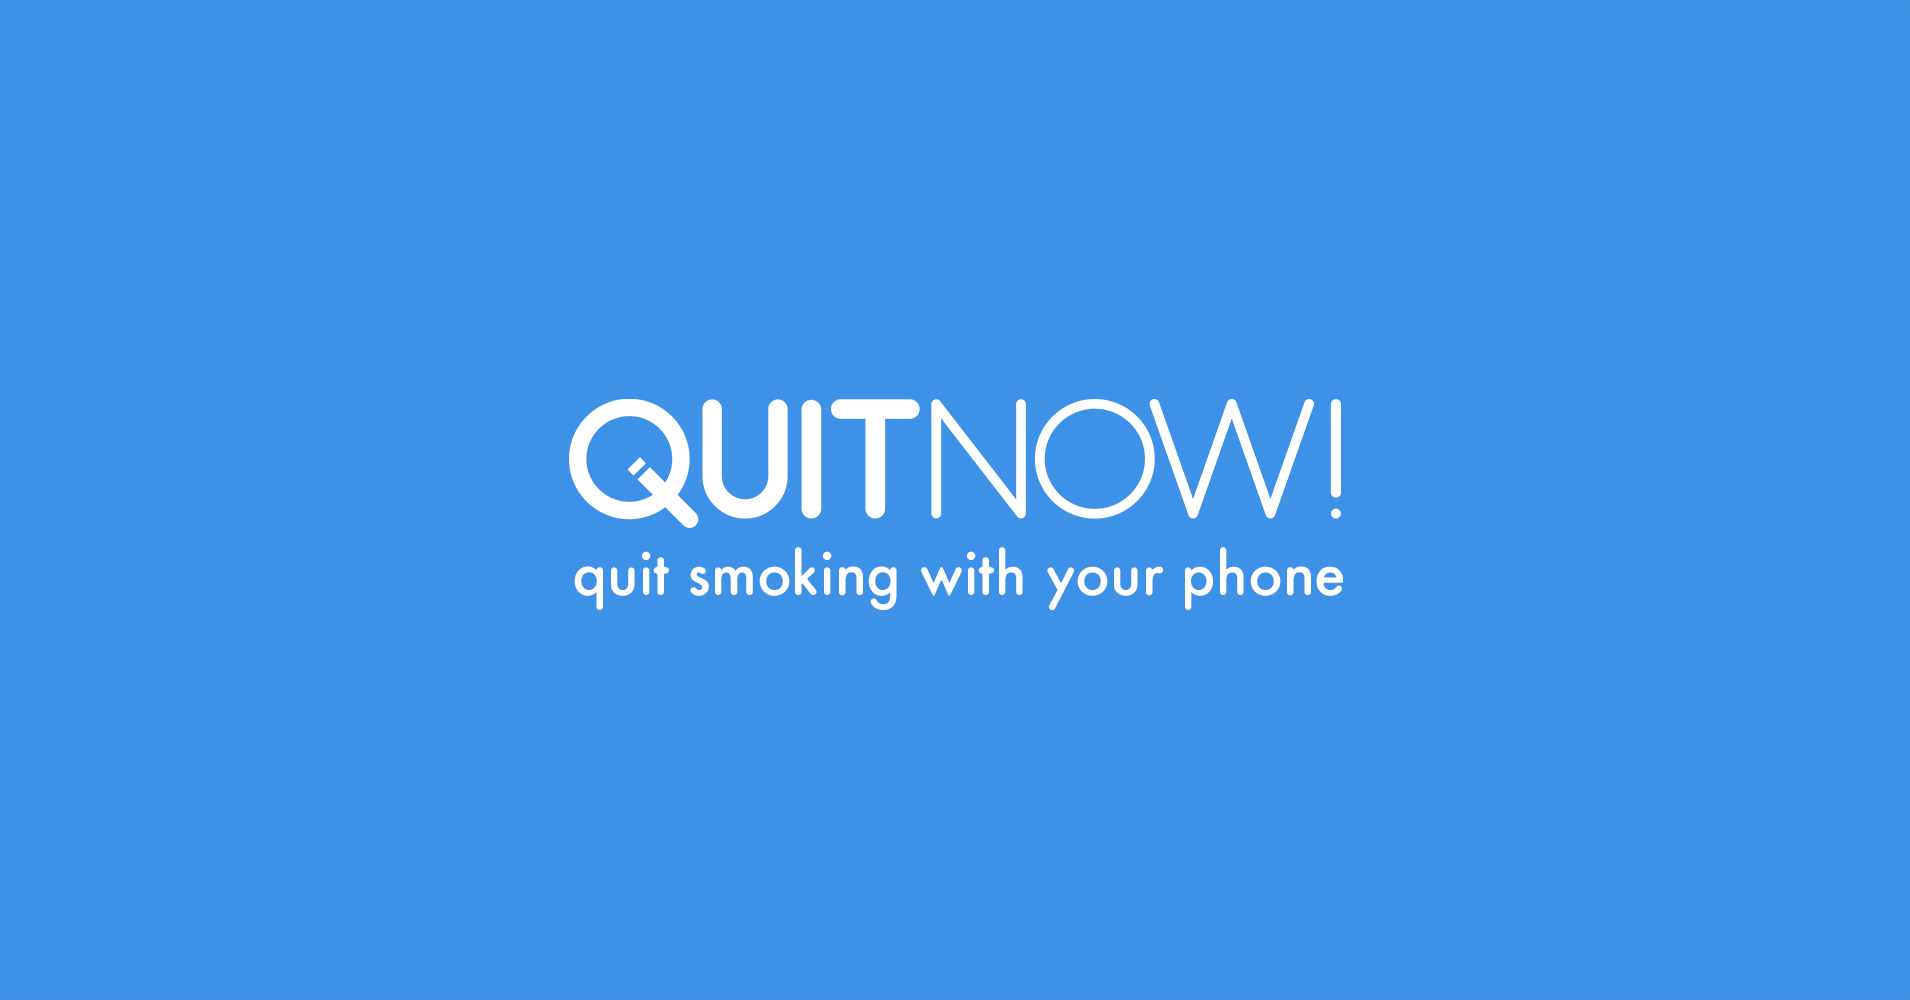 Quitting smoking made easy!